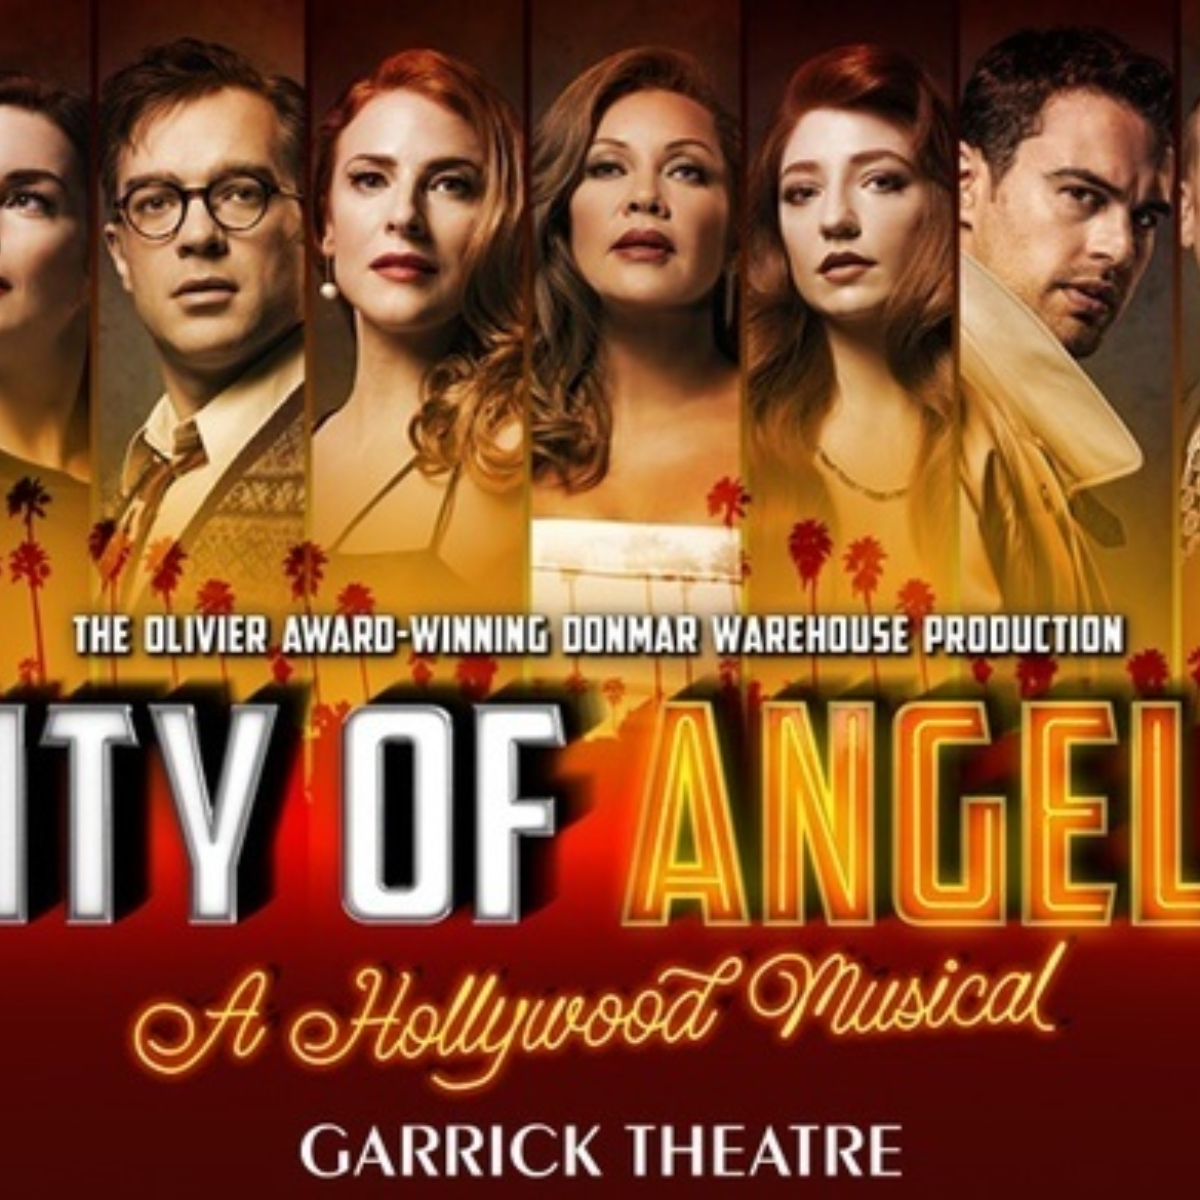 City of Angels Images